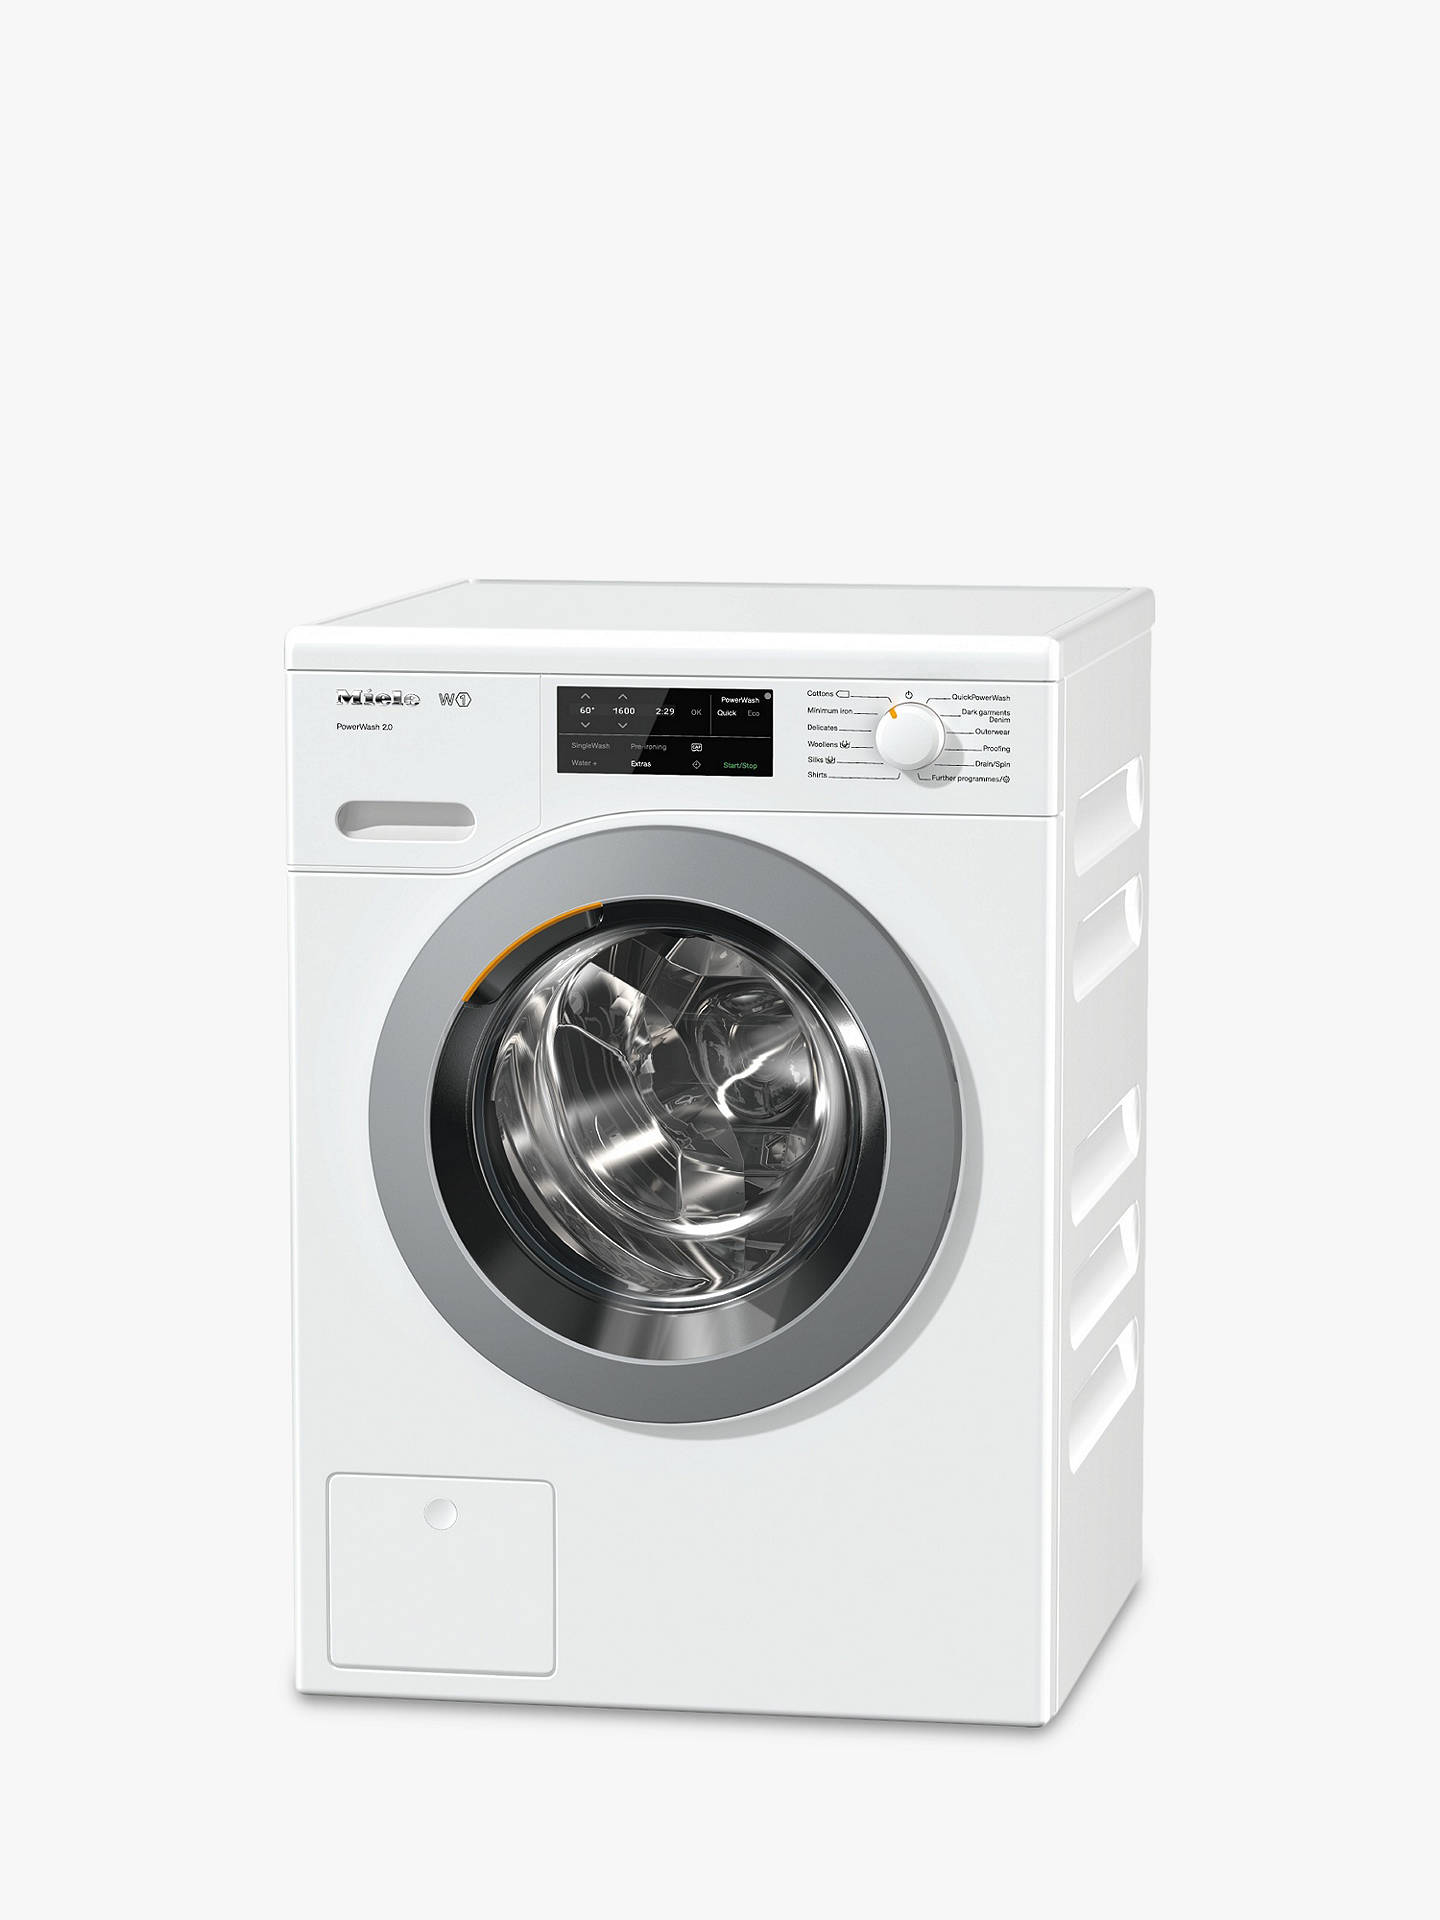 BuyMiele WCE320 Quick PowerWash Freestanding Washing Machine, 8kg Load, A+++ Energy Rating, 1400rpm Spin, White Online at johnlewis.com